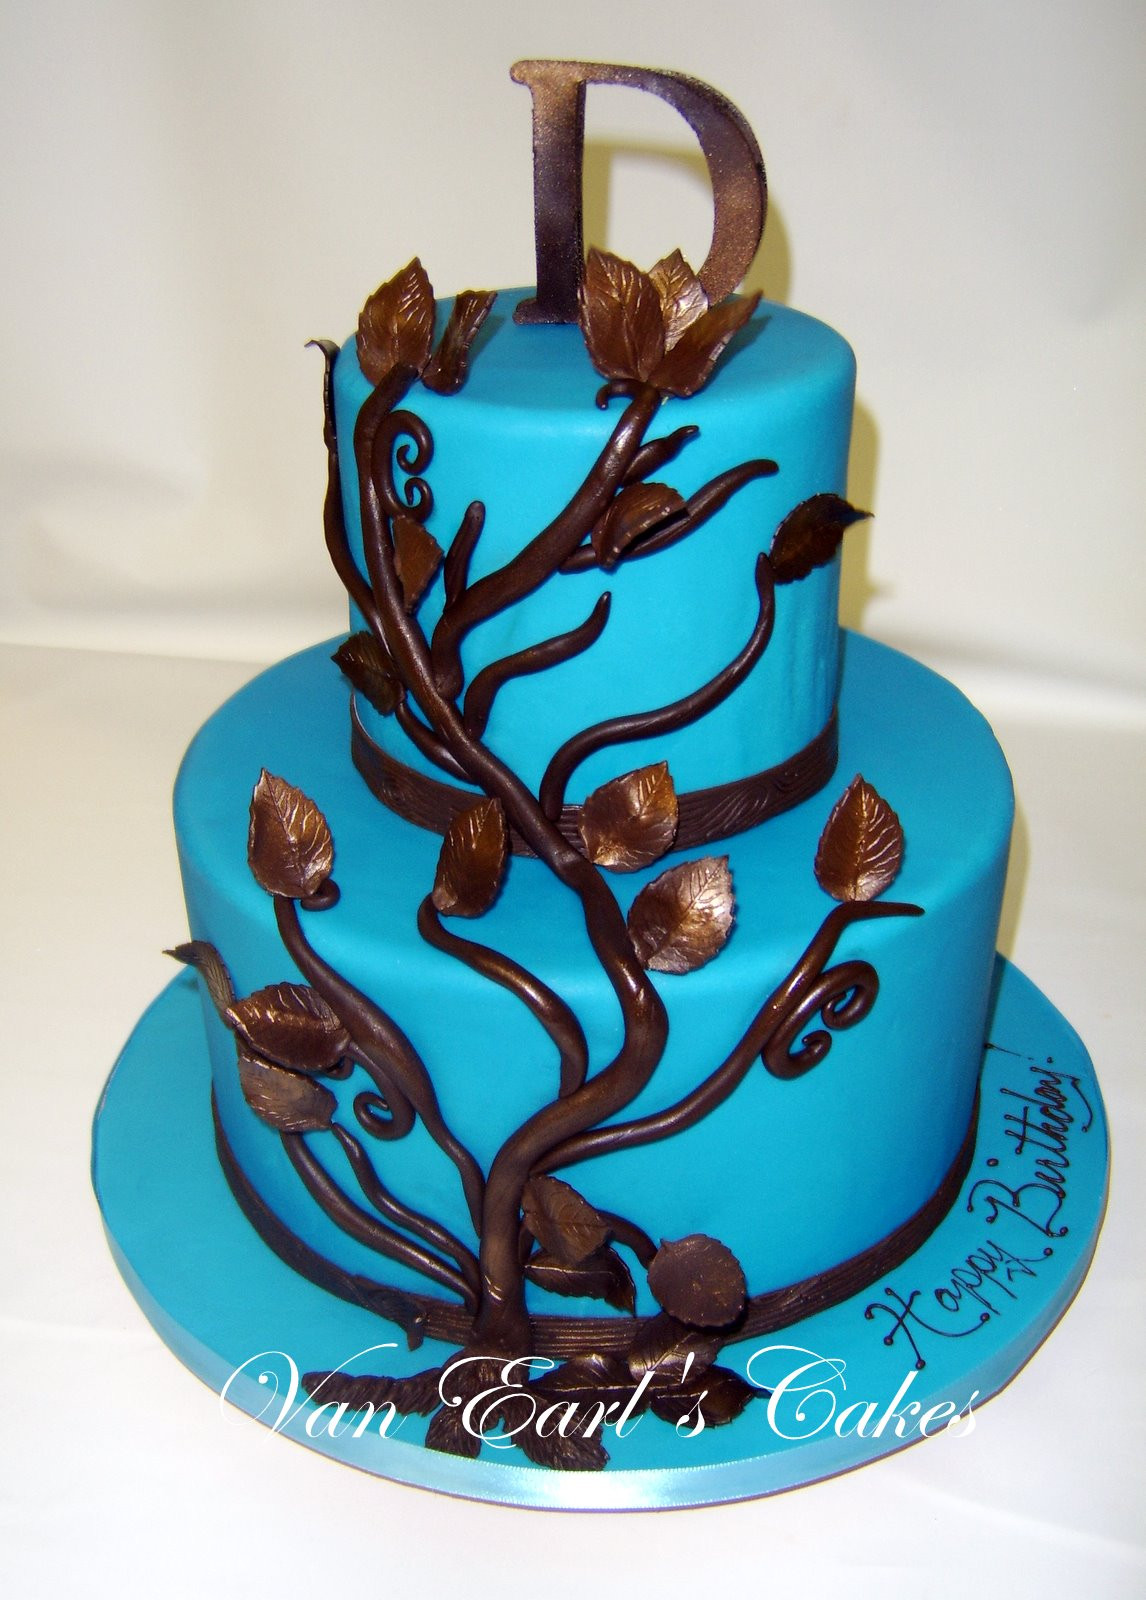 Best ideas about Blue Birthday Cake . Save or Pin Van Earl s Cakes Surprise Blue Birthday Cake Now.